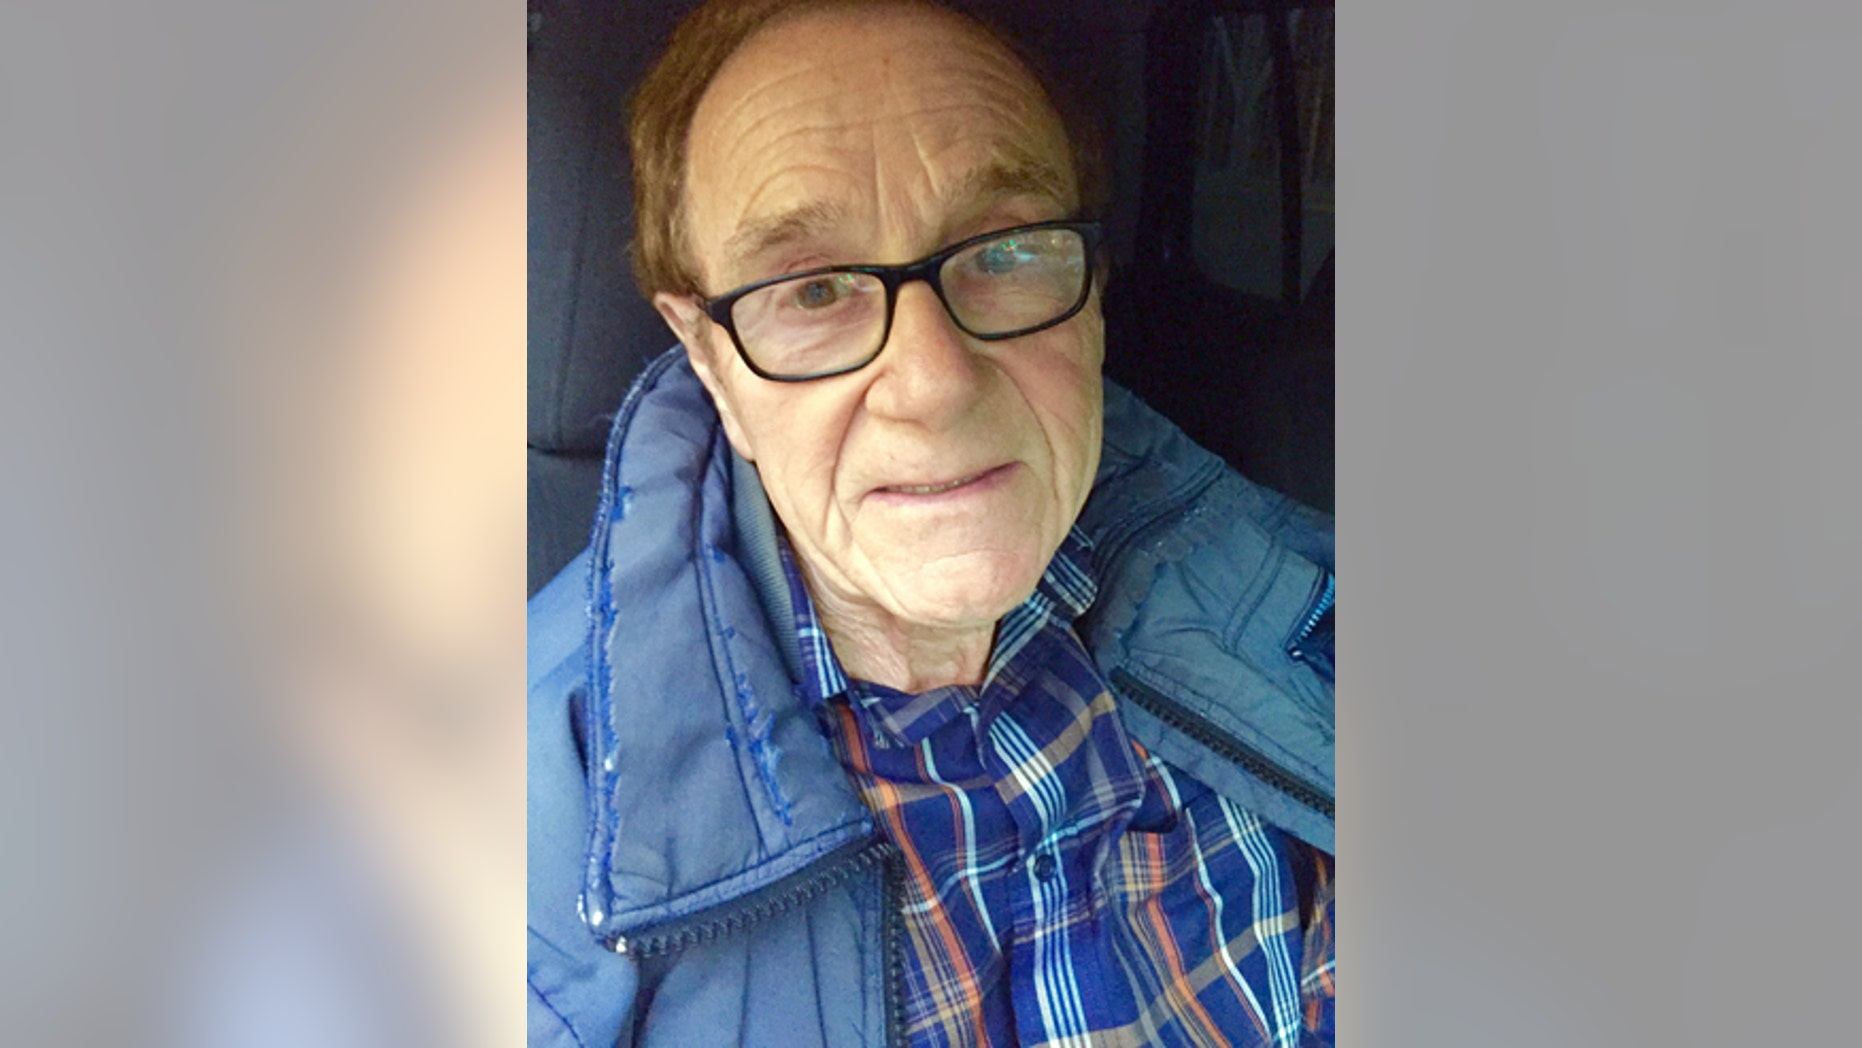 File-In this Jan. 25 2016, file photo provided by the U.S. Marshals Service shows Frank Szeles after his arrest in Bonita, Calif. Rapides Parish Assistant District Attorney Brian Mosley says 76-year-old Frank John Selas III was indicted Thursday, Feb. 25, 2016, on two counts of aggravated rape, three counts of sexual battery and eight counts of indecent behavior with a juvenile. (U.S. Marshals Service via AP, File)